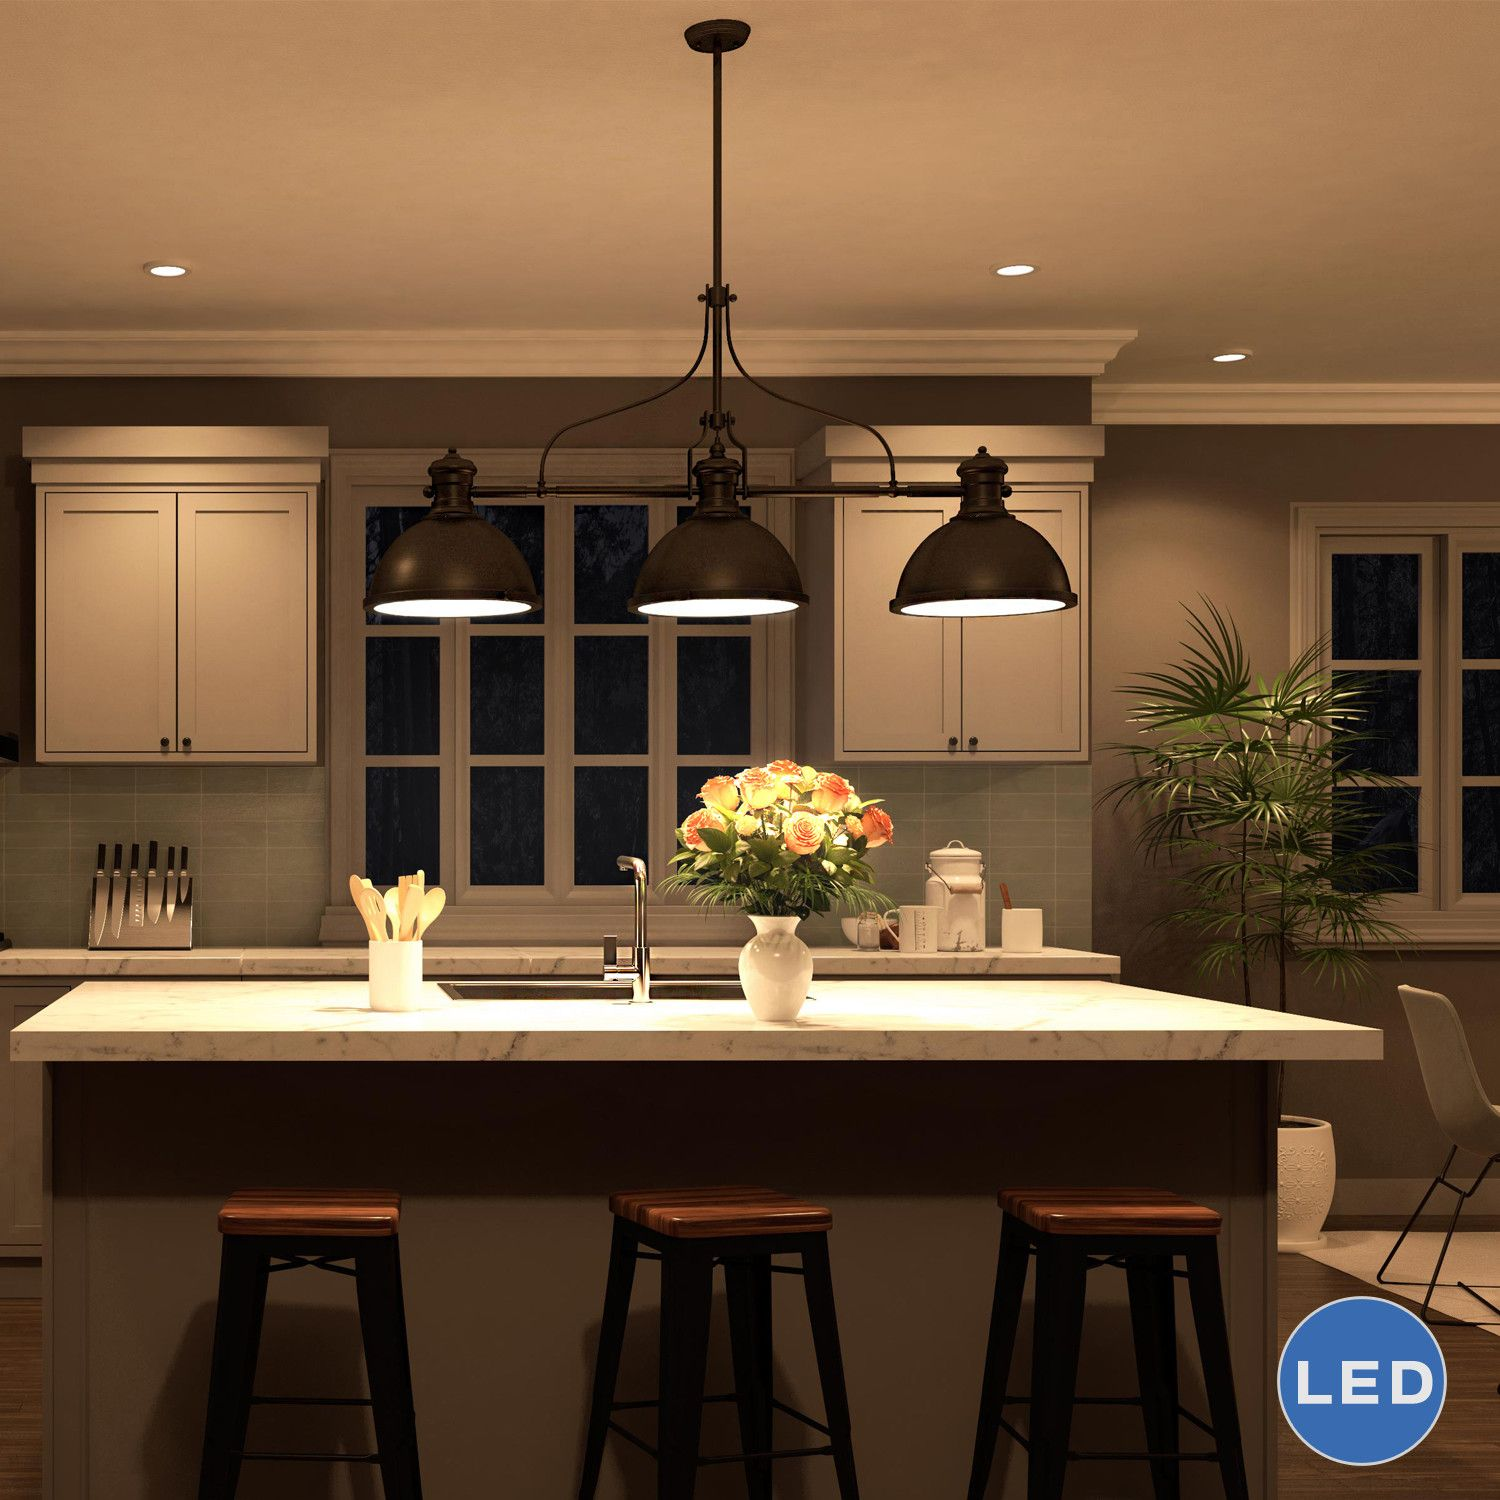 The room may receive welcoming glow thanks to big pendant lighting that  gives stair landing. Meanwhile, other items are located in one strategic  spot to